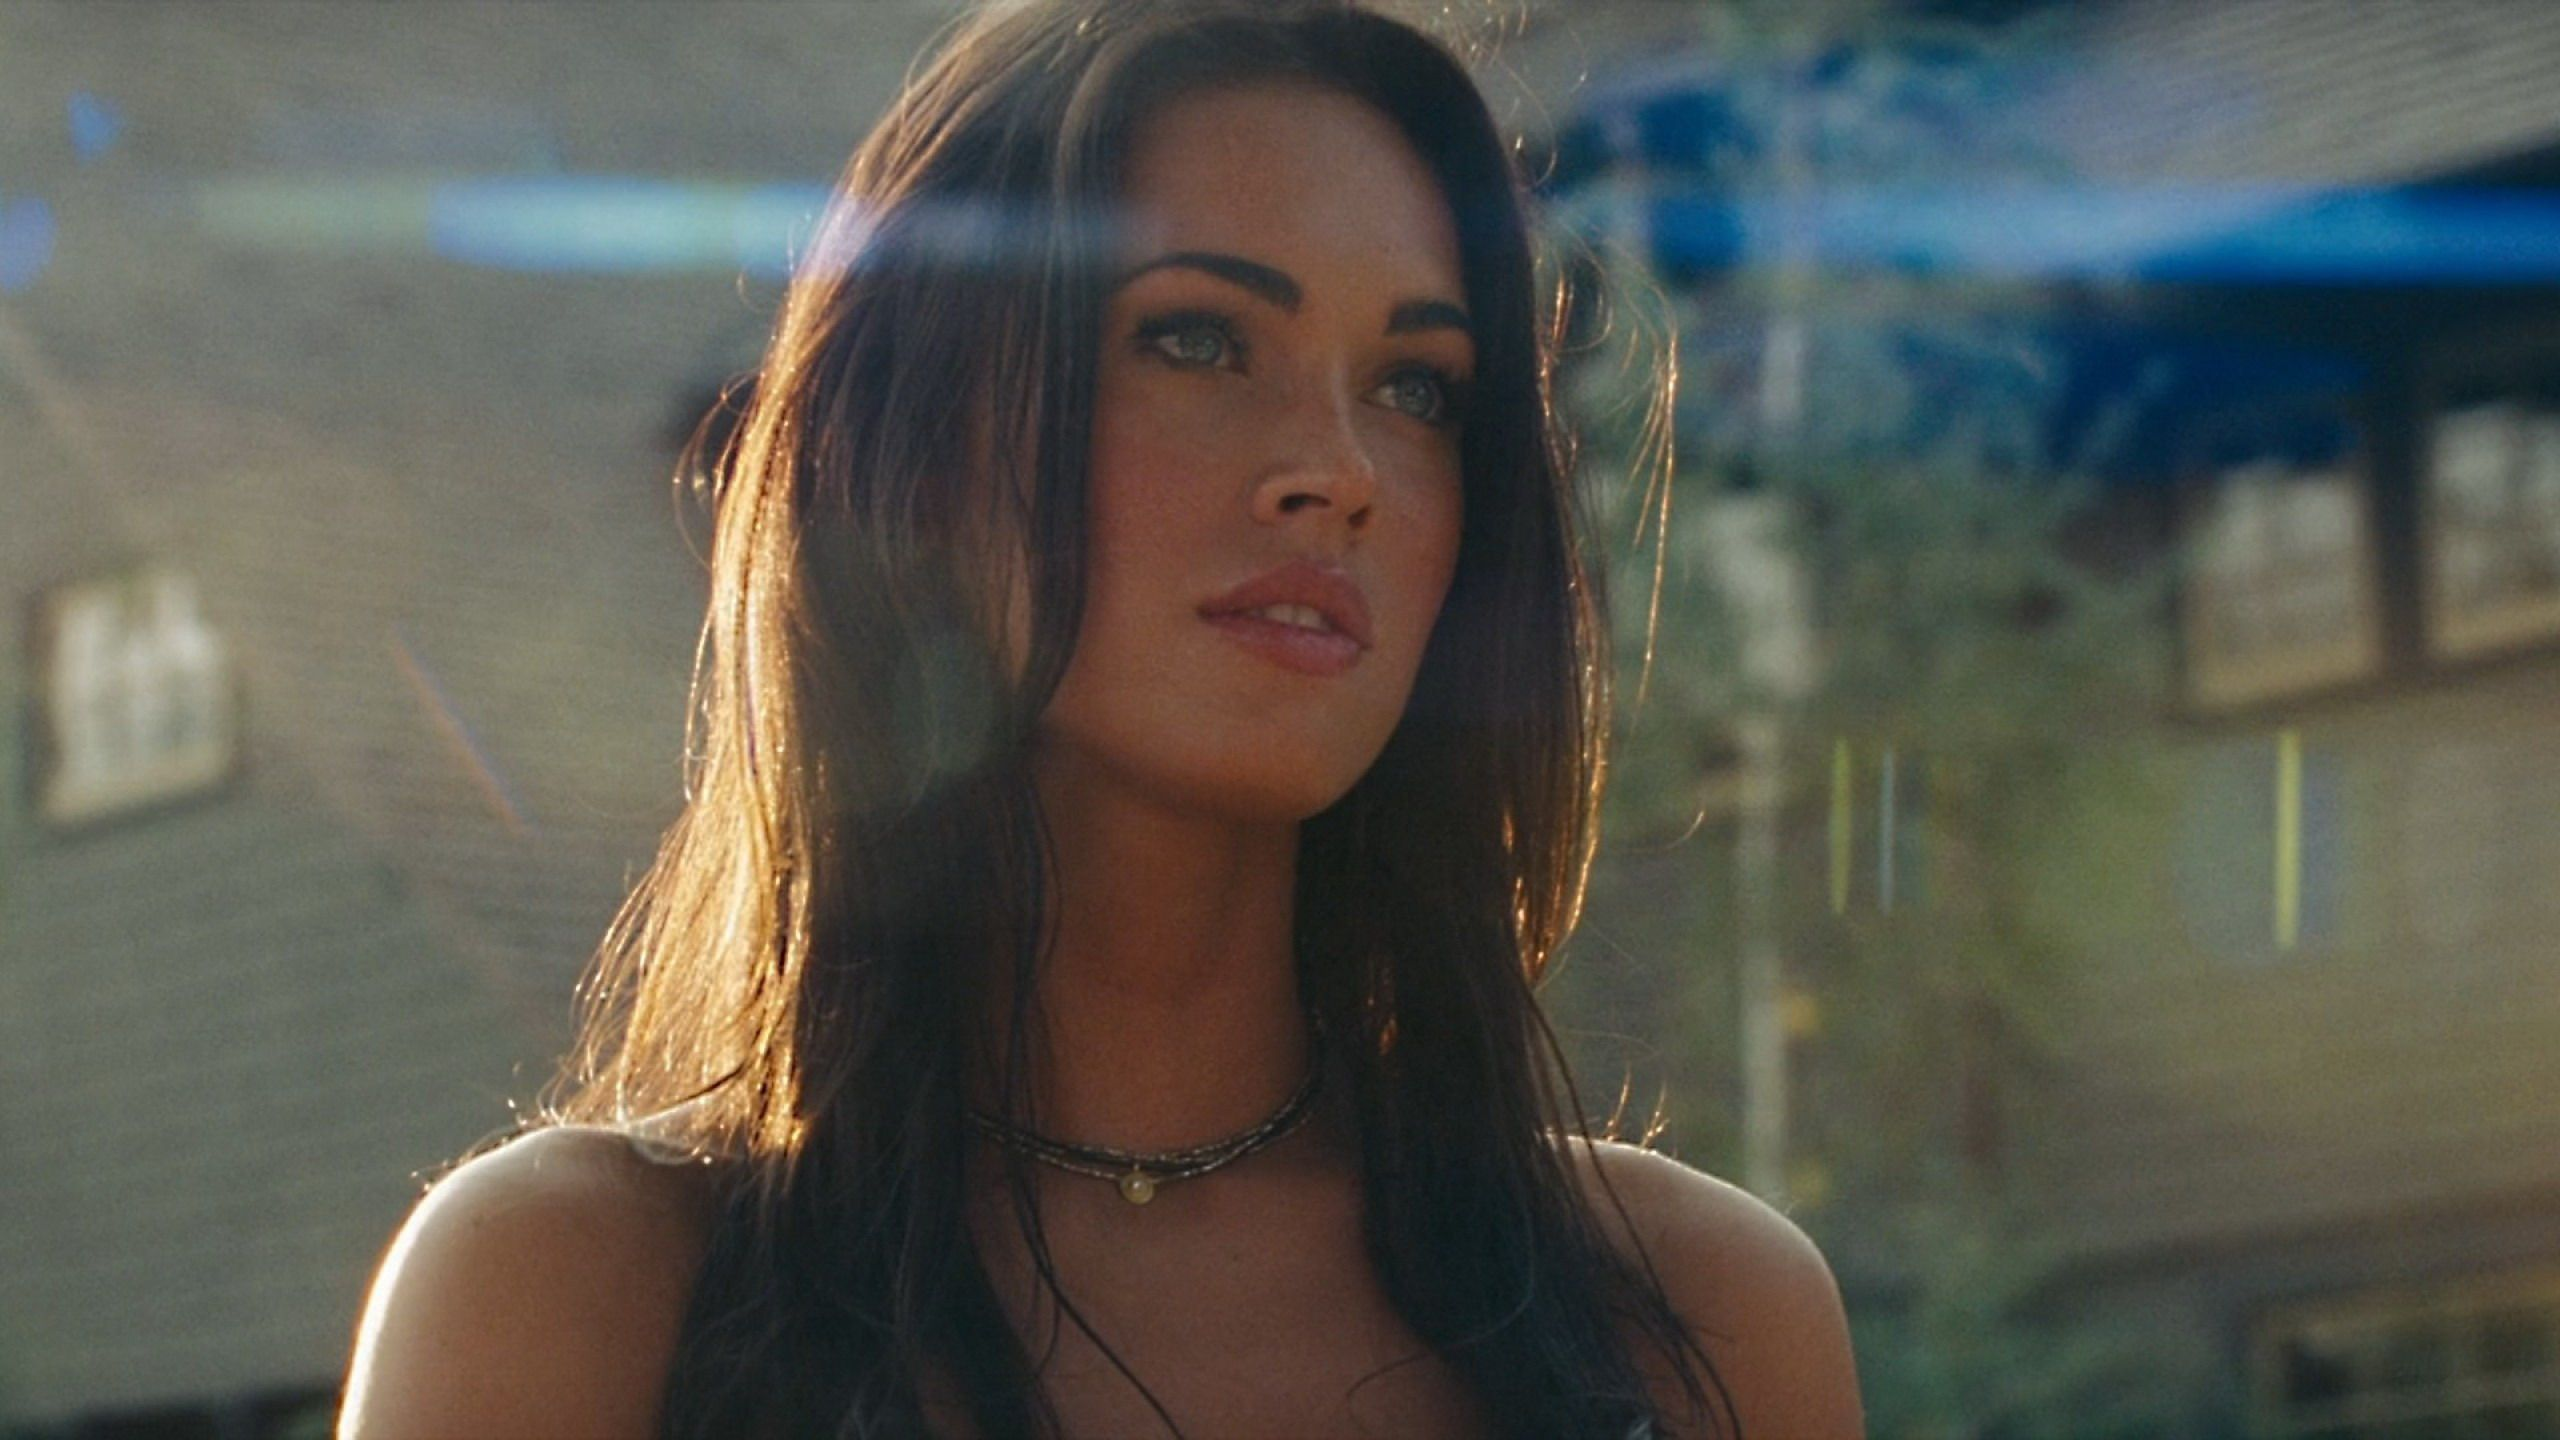 Megan Fox from transformers